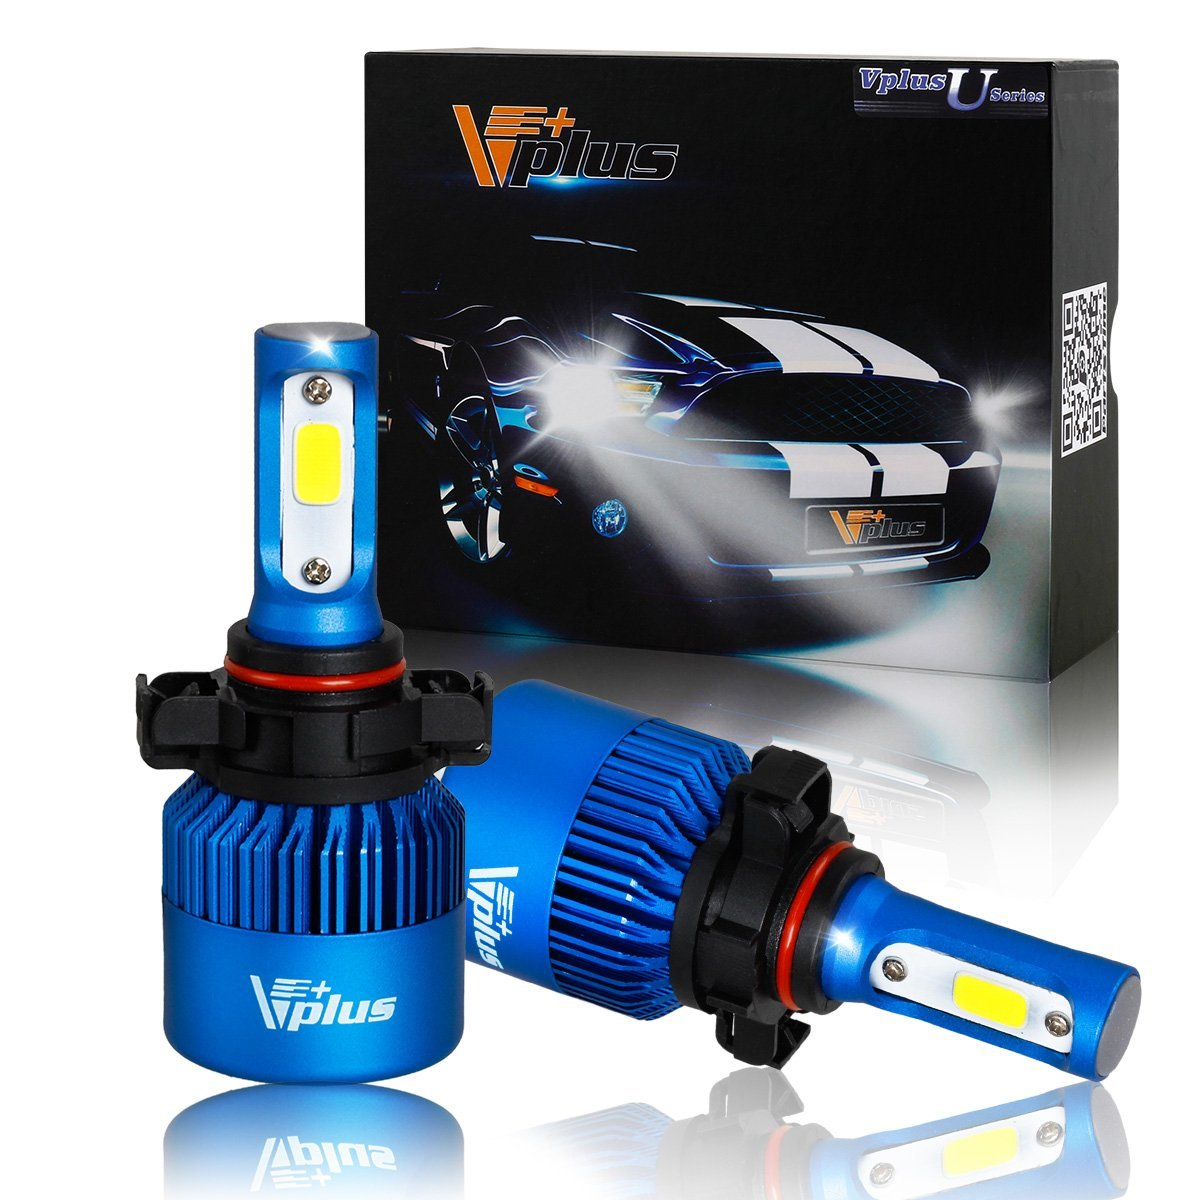 Vplus U Series LED Headlight Bulbs- 5202 12086 PS24W 80W 8,000LM 6500K White COB w/ Fan LED Headlamp Conversion Replace HID & Halogen- (2pcs/set)